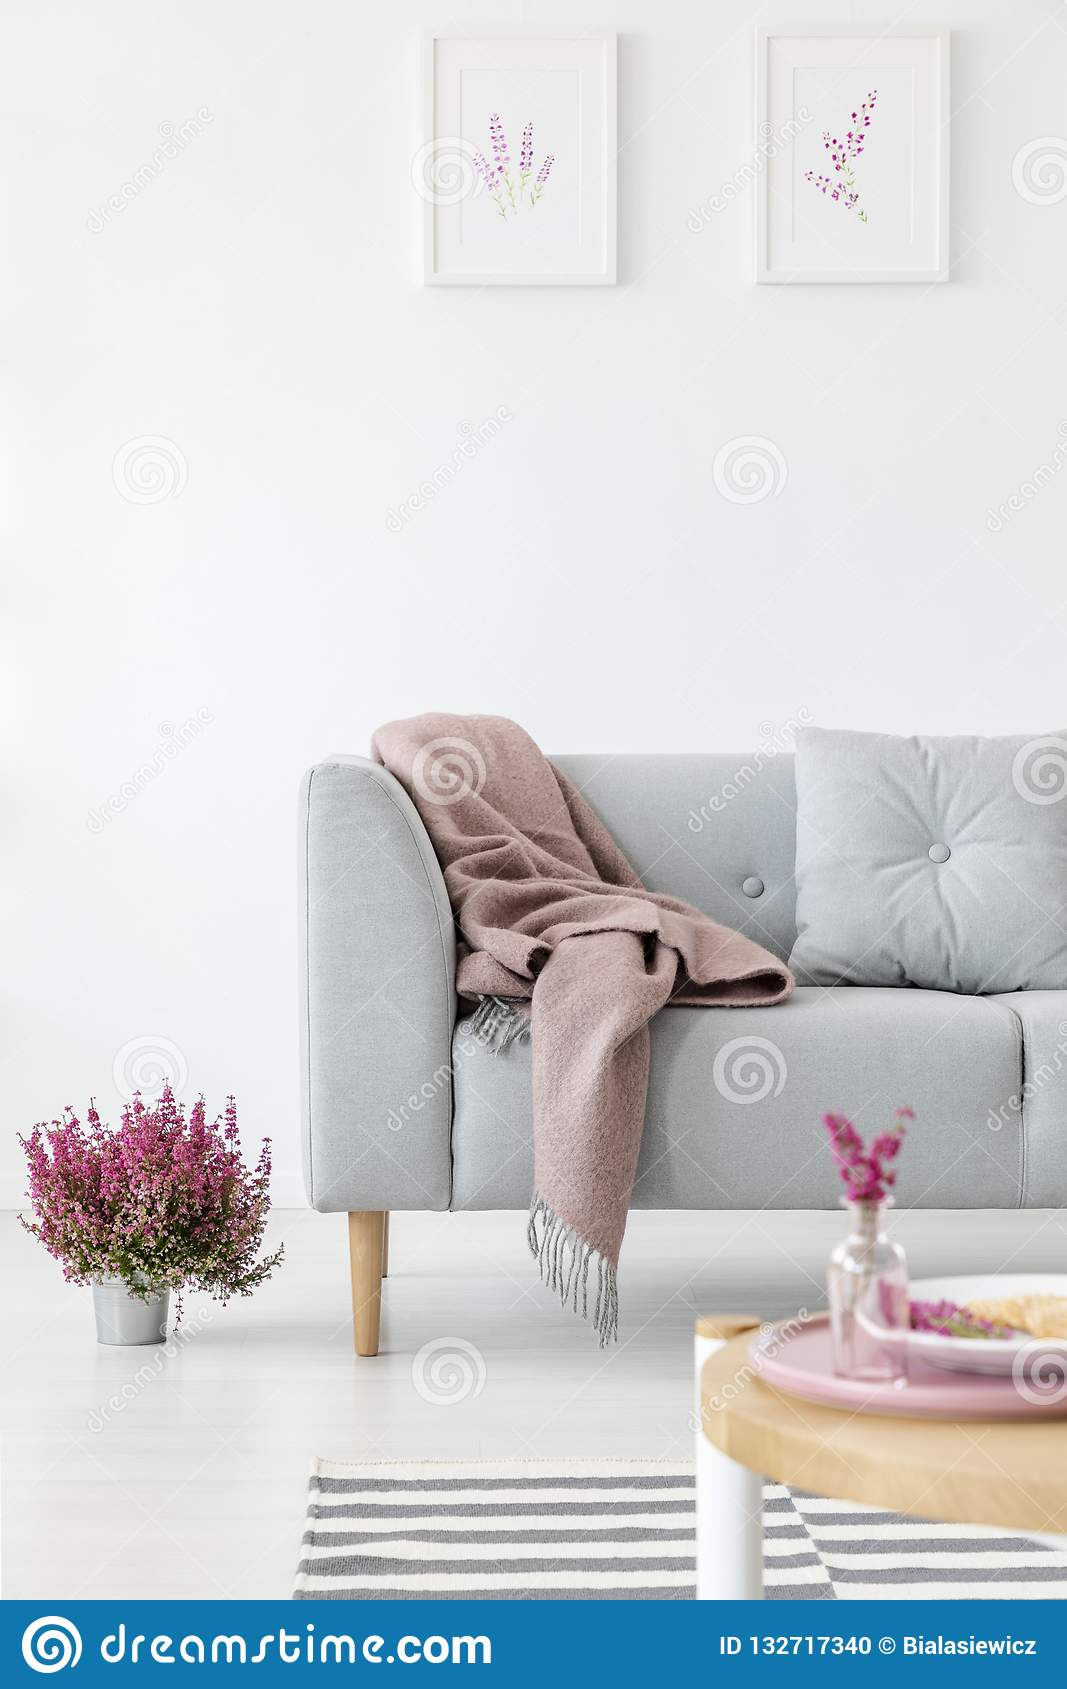 Vertical view of comfortable grey couch in bright living room interior with heather in pot and graphics i